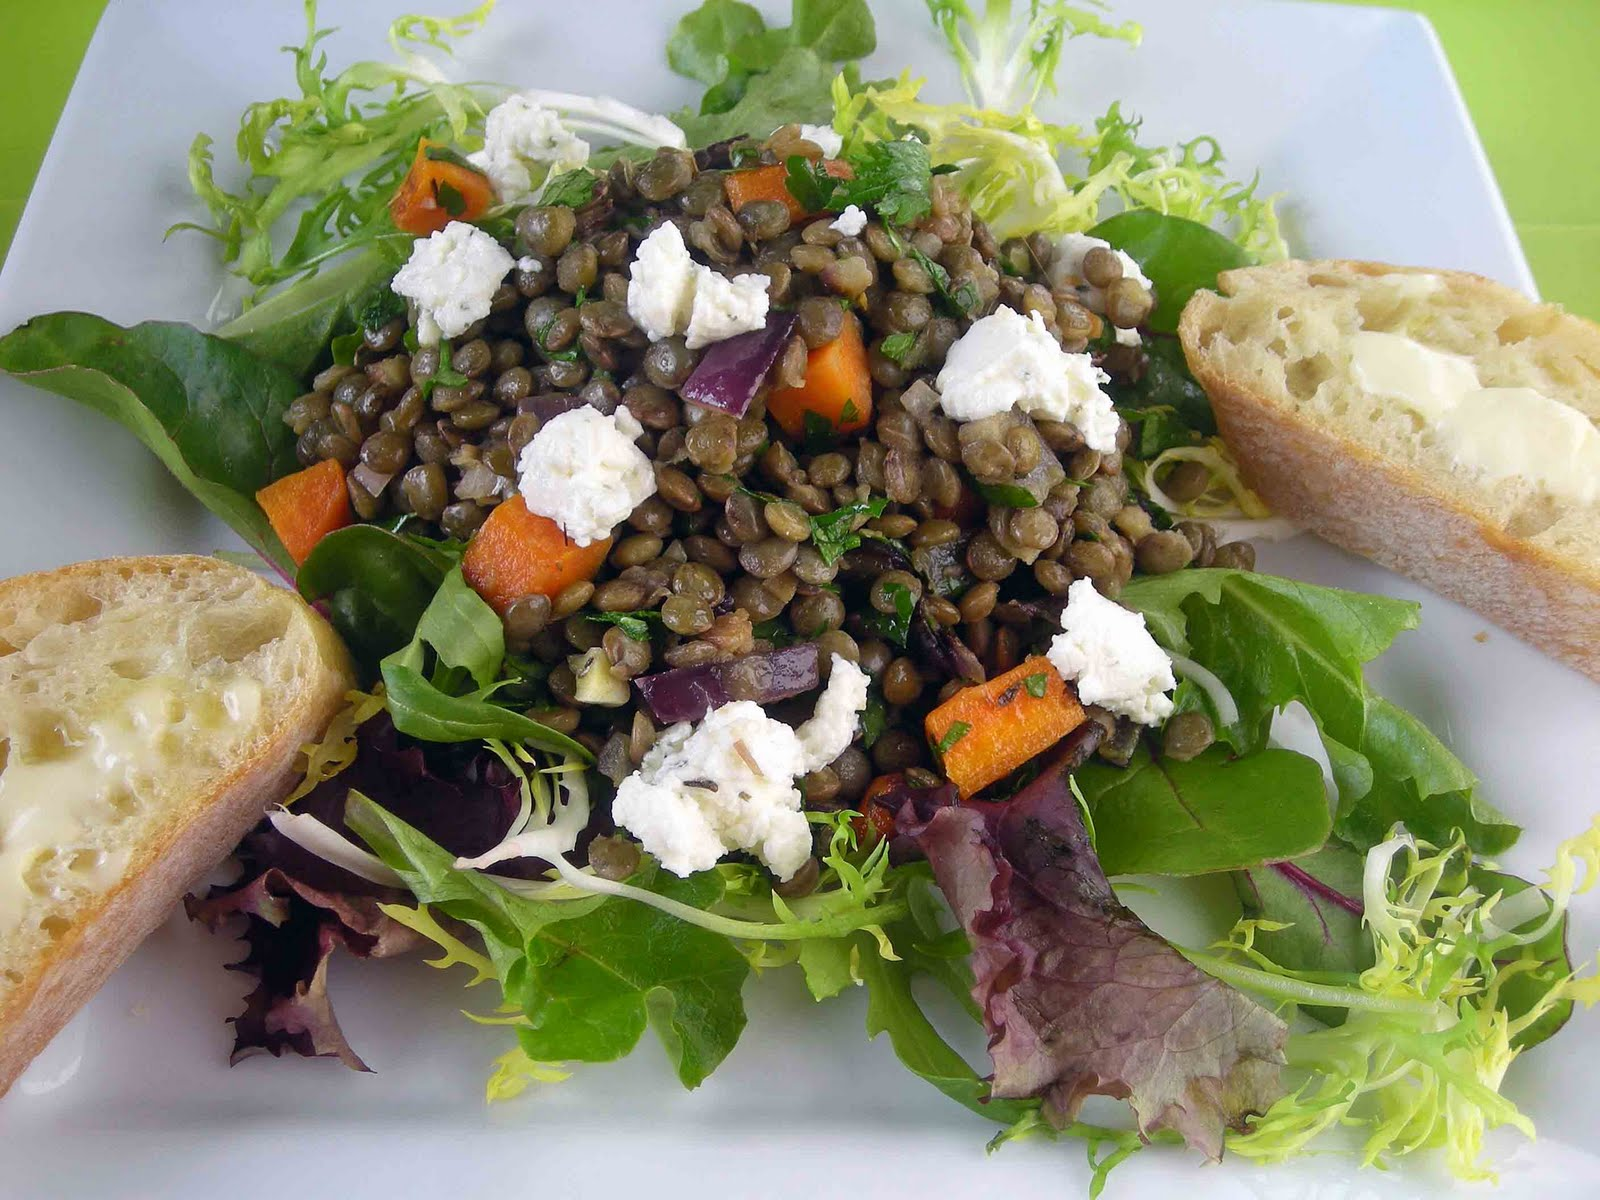 My Carolina Kitchen: French Lentil Salad with Goat Cheese and Fontaine ...